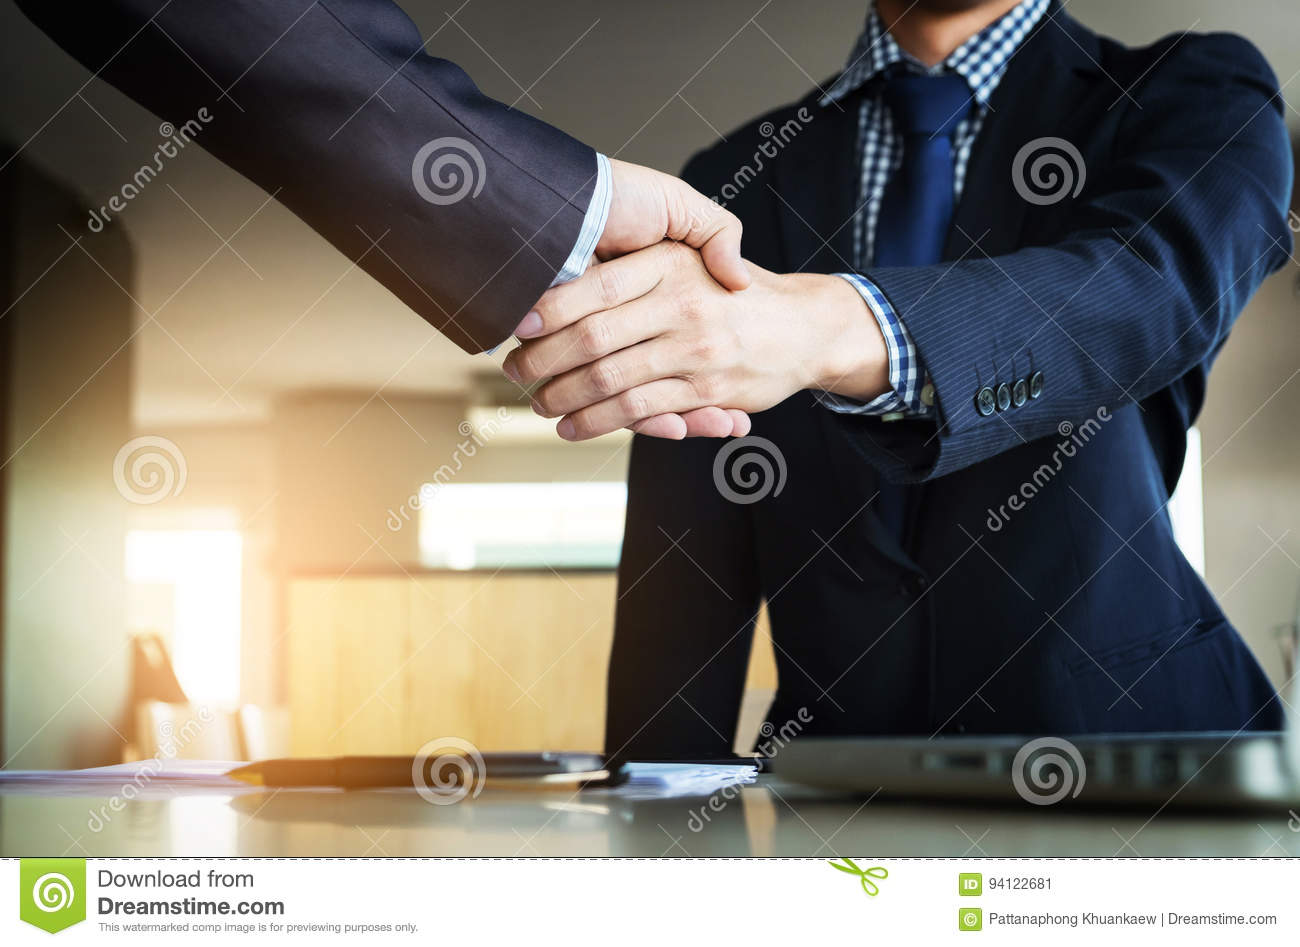 Business partnership meeting concept. Images of business people